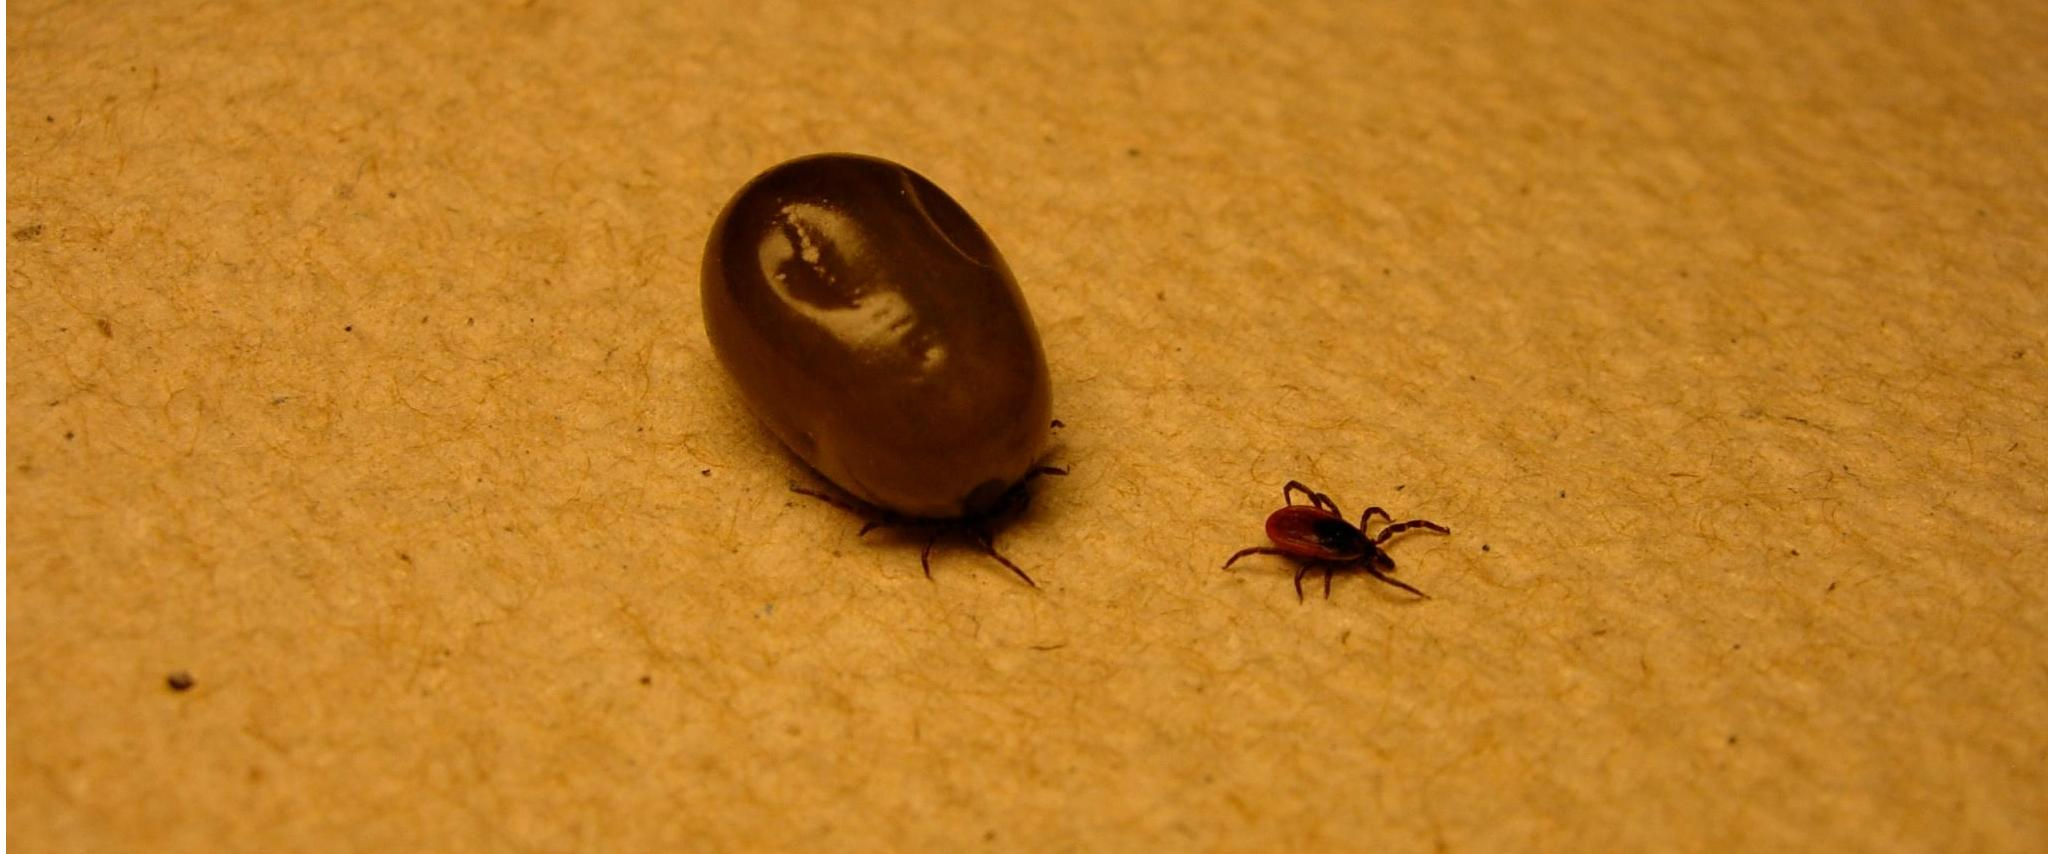 how to detect ticks on humans